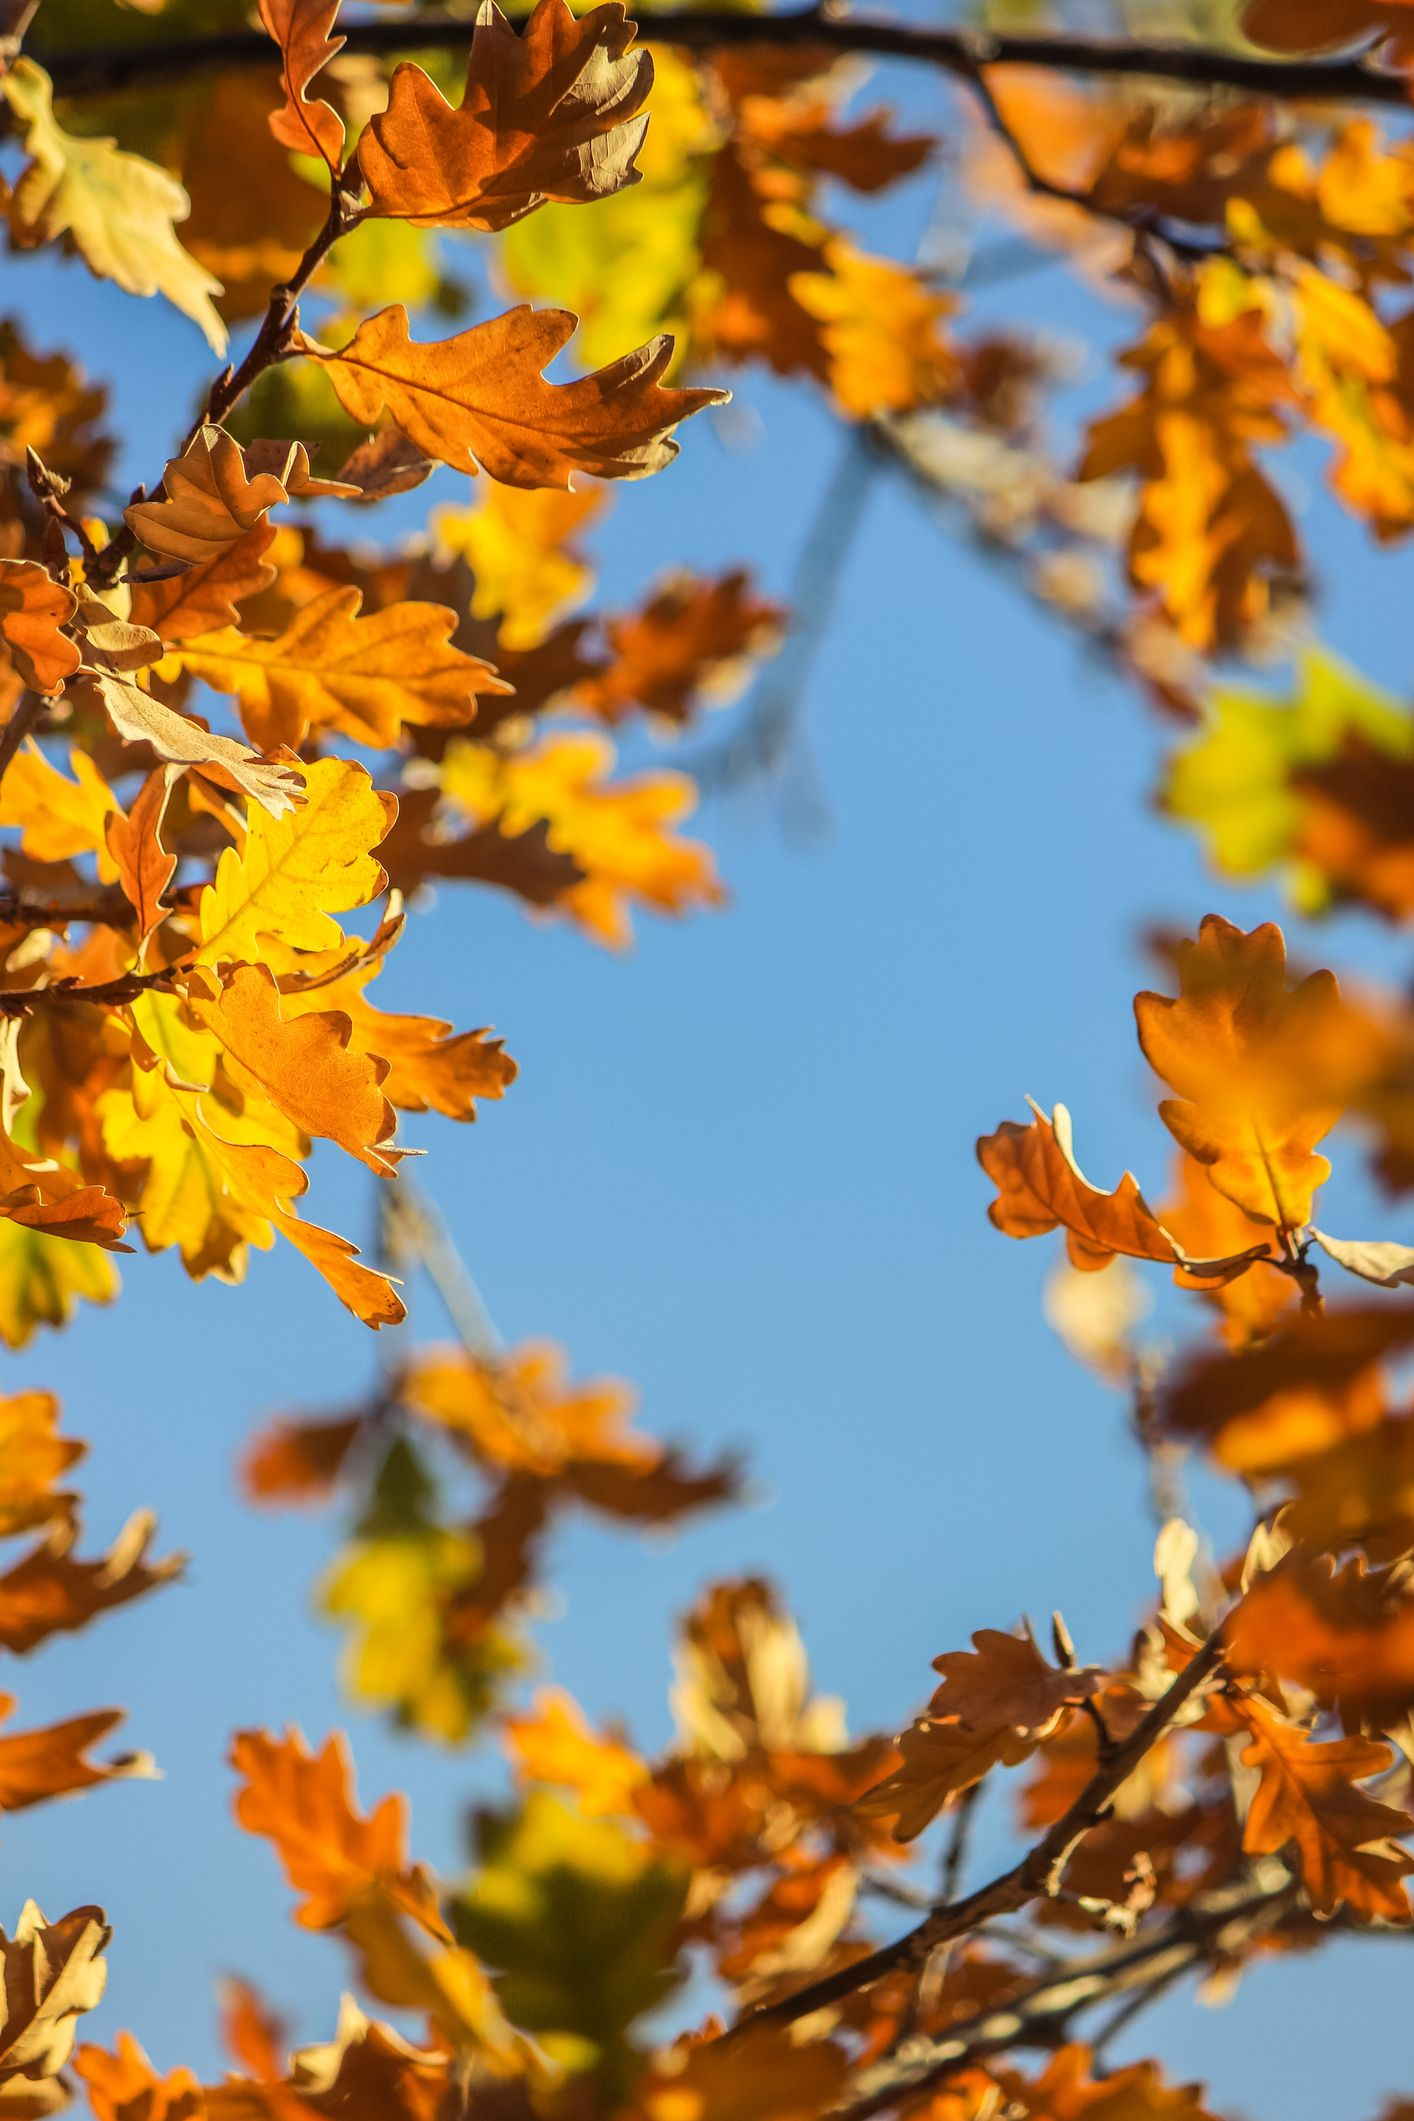 Autumn is the best season for gardening, says the RHS